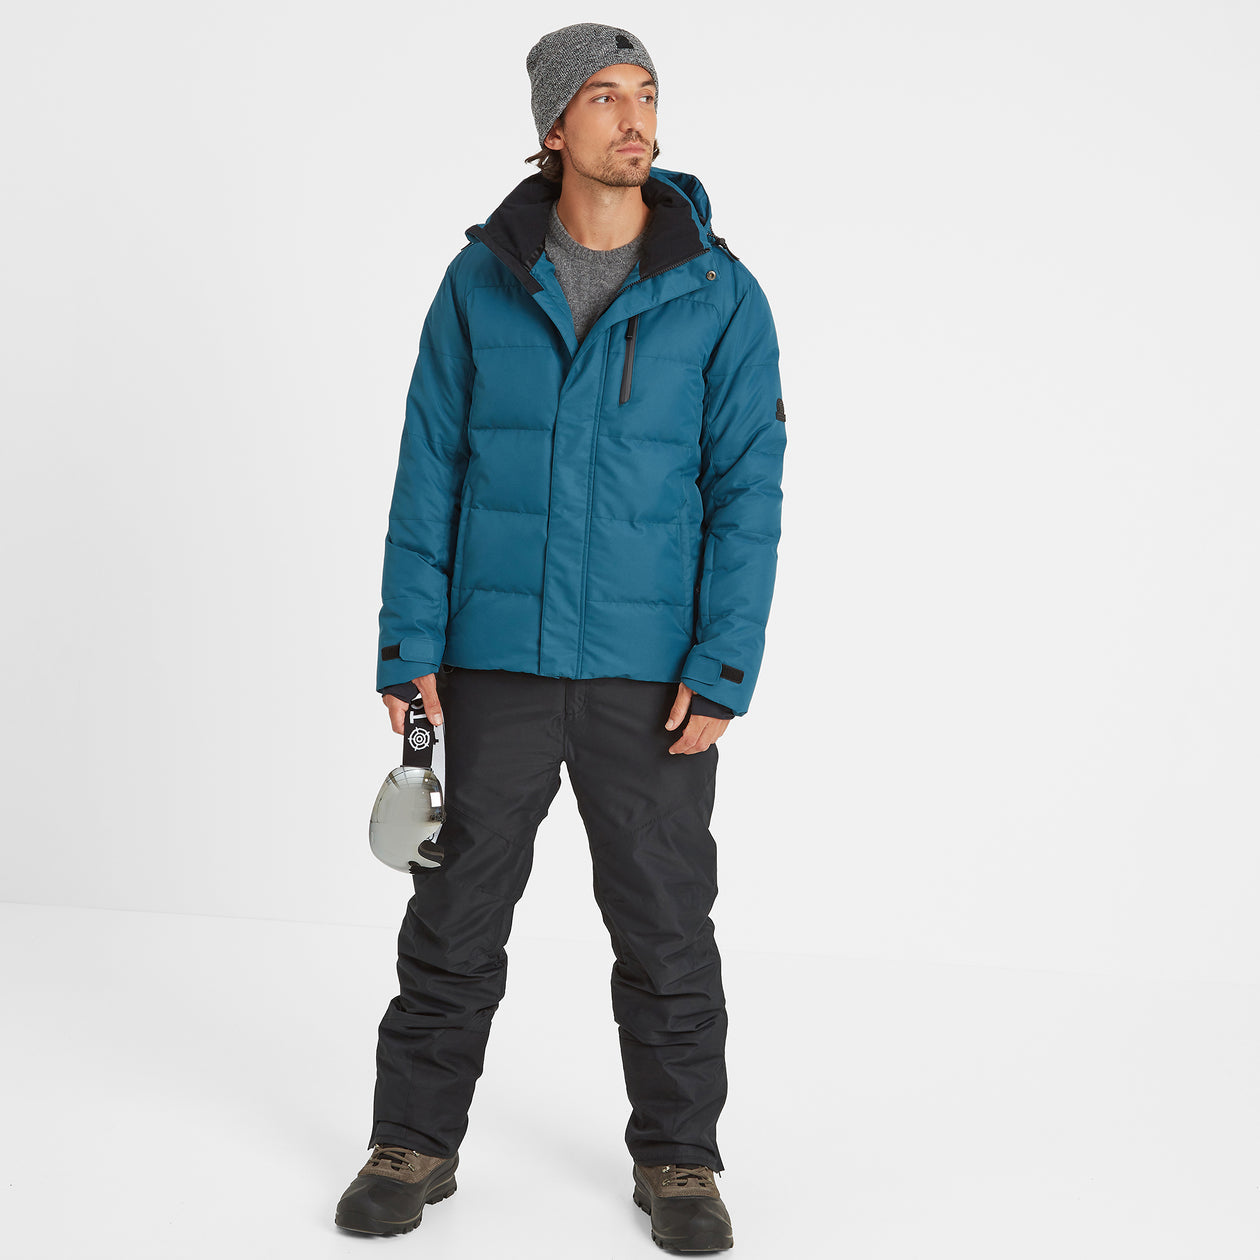 Gunby Mens Down Filled Ski Jacket - Lagoon image 4